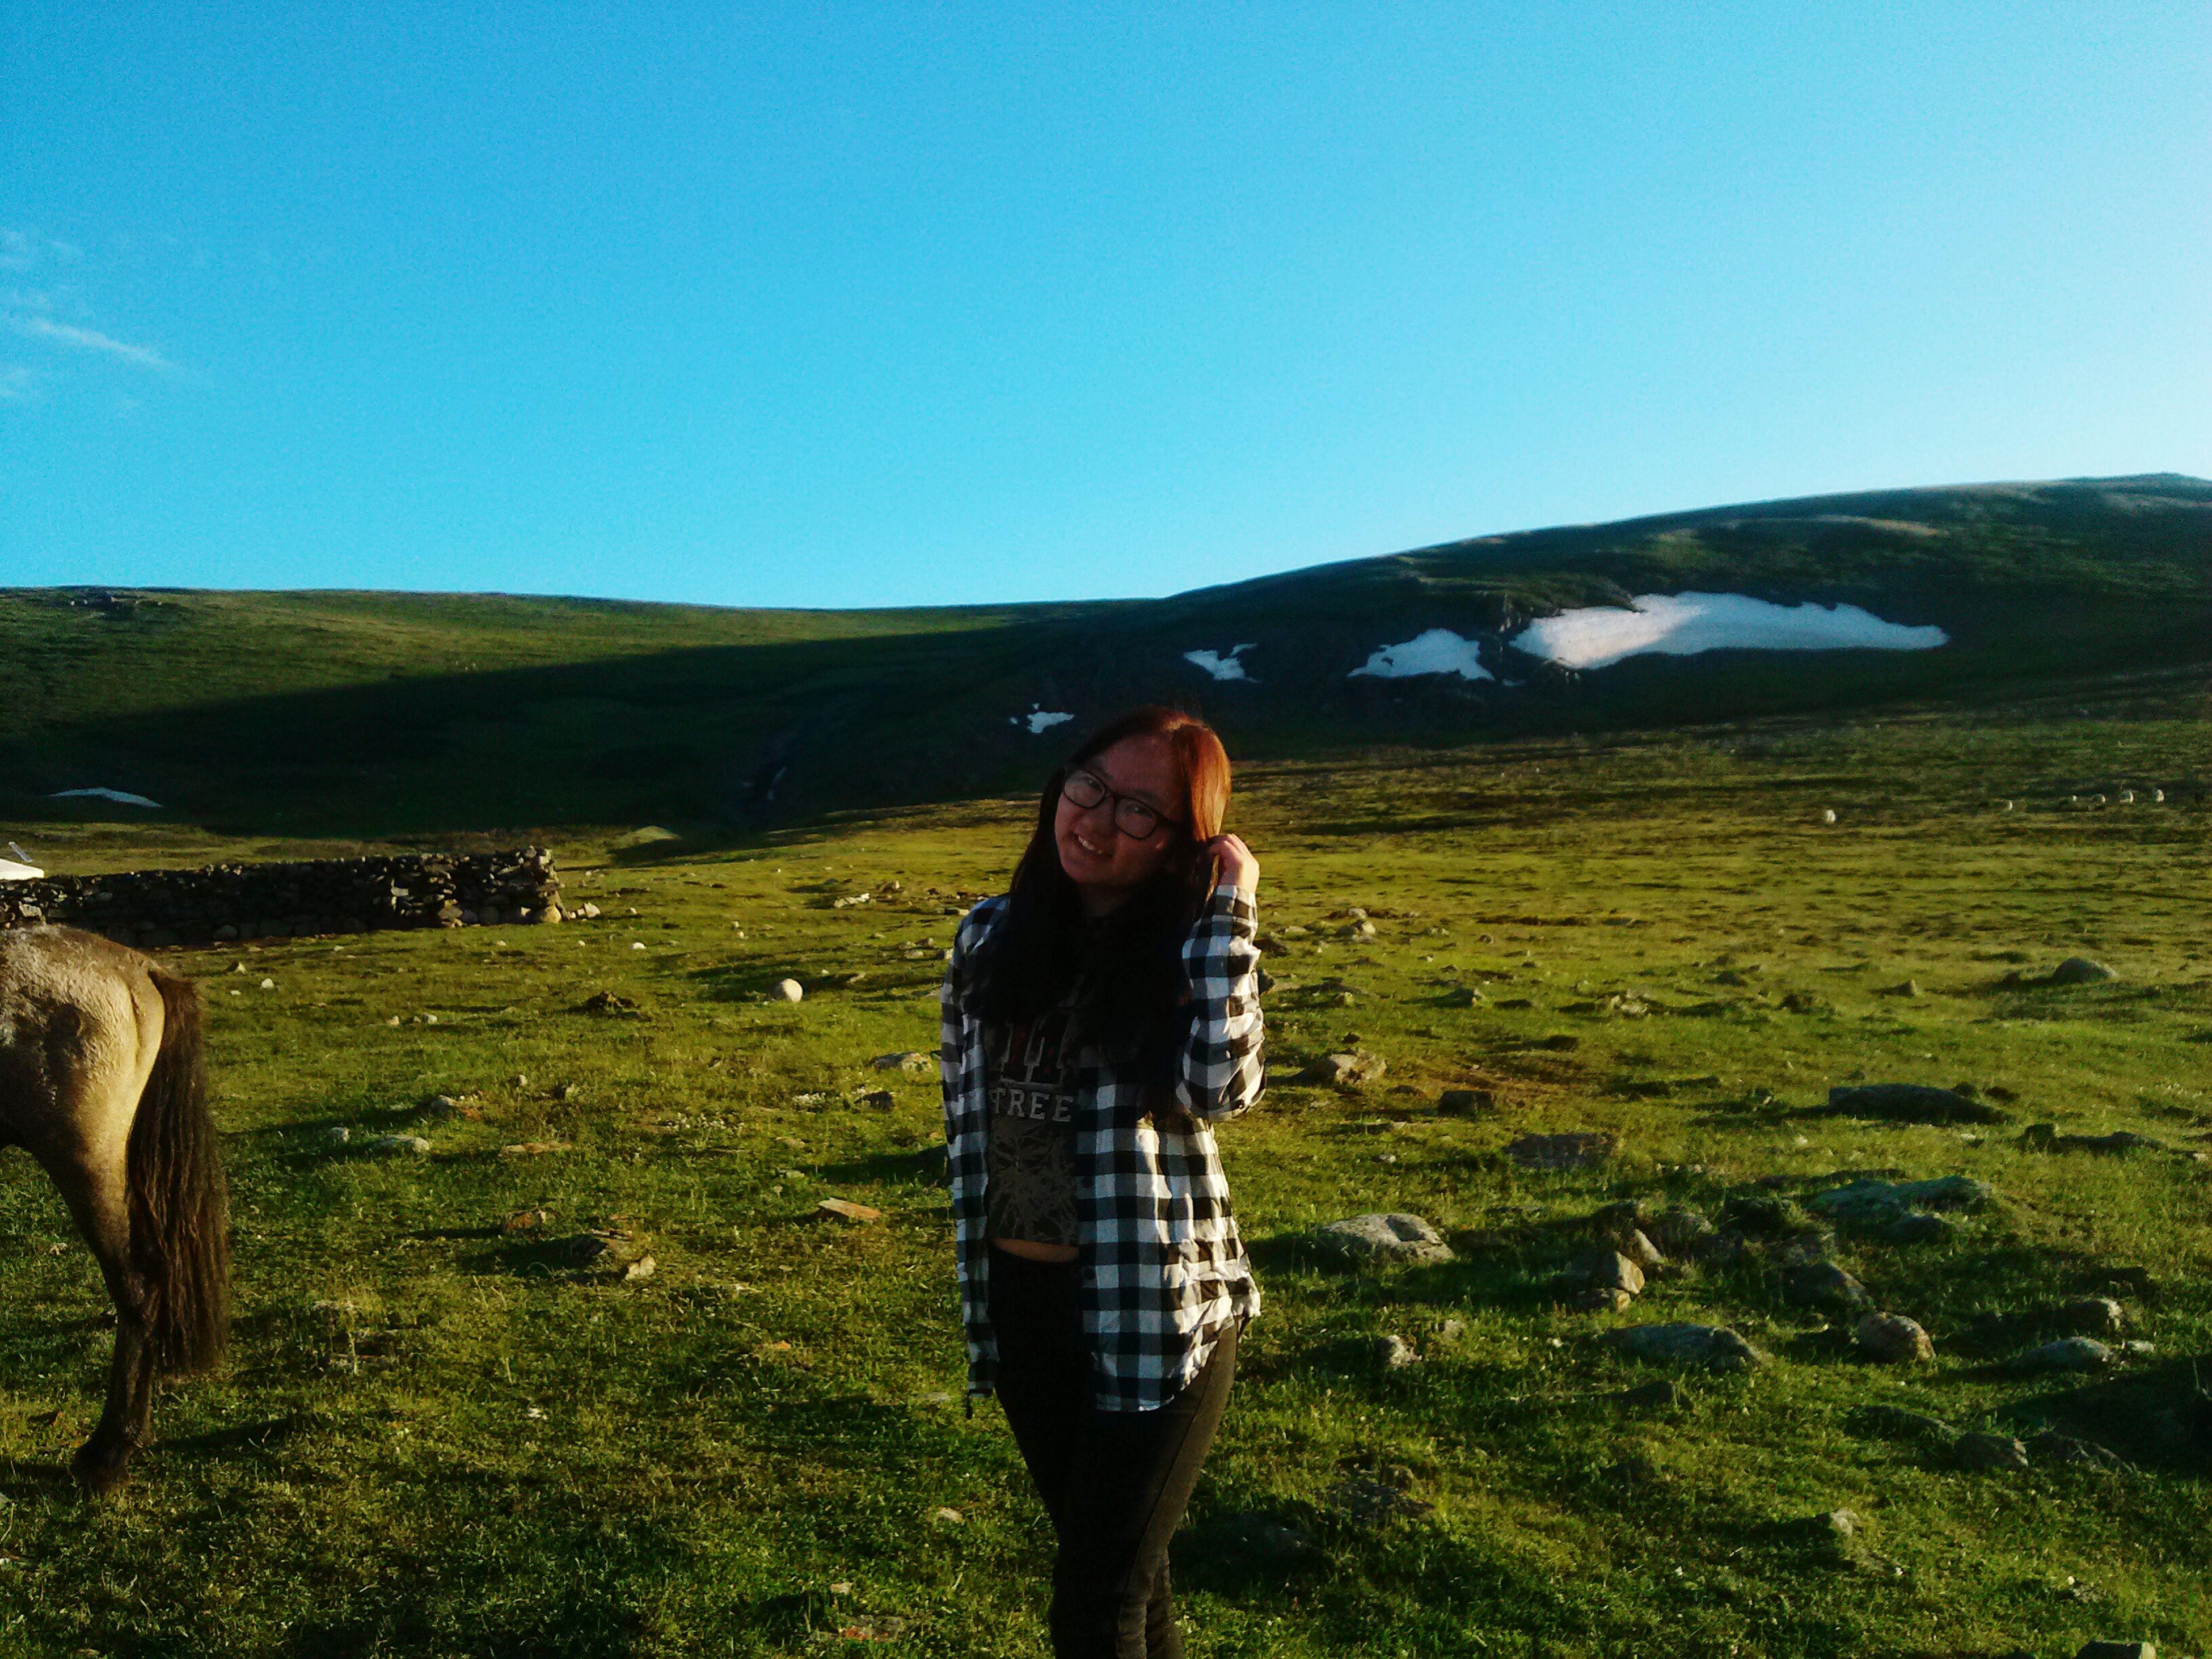 clear sky, leisure activity, standing, young adult, mountain, young women, lifestyles, casual clothing, person, blue, tranquil scene, scenics, long hair, beauty, nature, beauty in nature, tranquility, field, green color, vacations, mountain range, non-urban scene, day